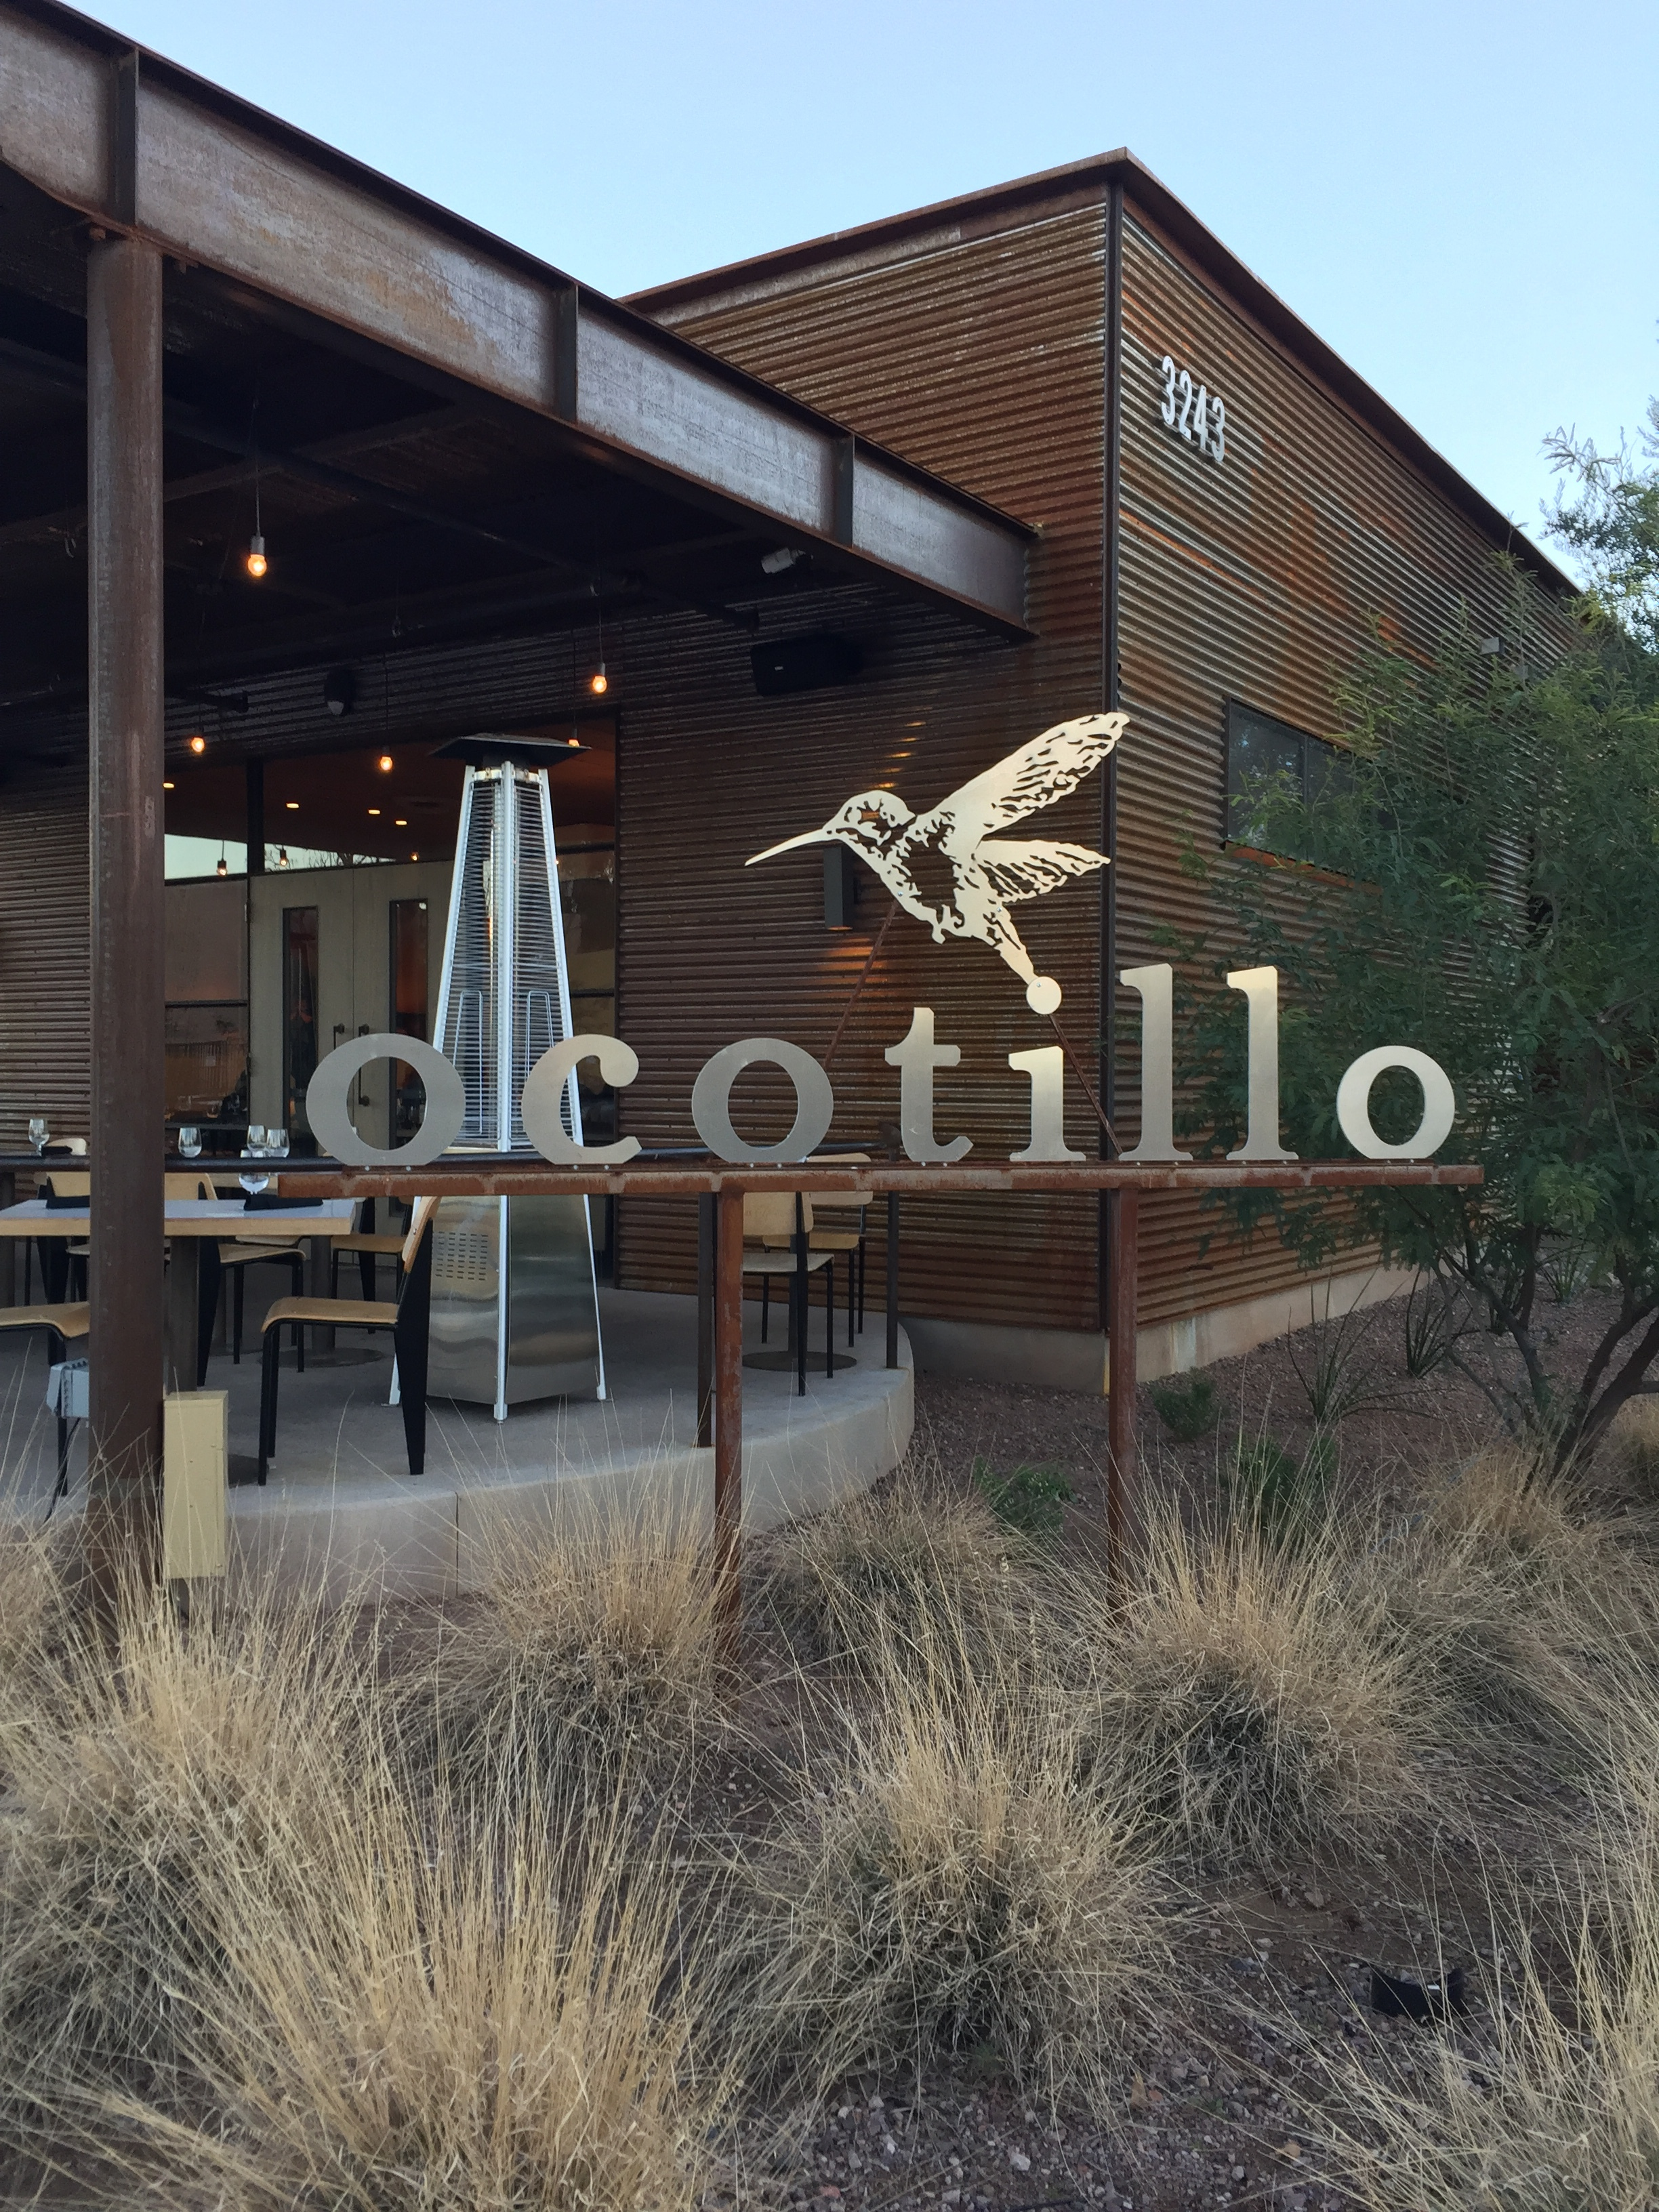 Located in a cool area close to downtown Phoenix that is being rehabbed.